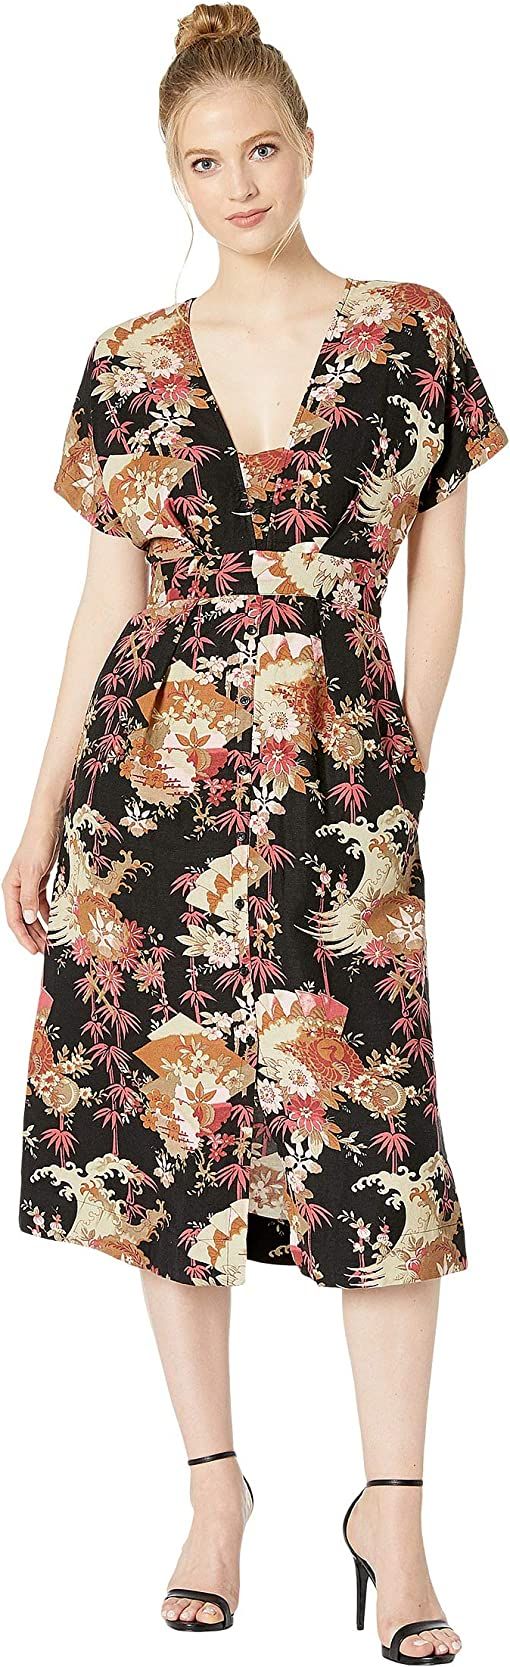 Bamboo Floral